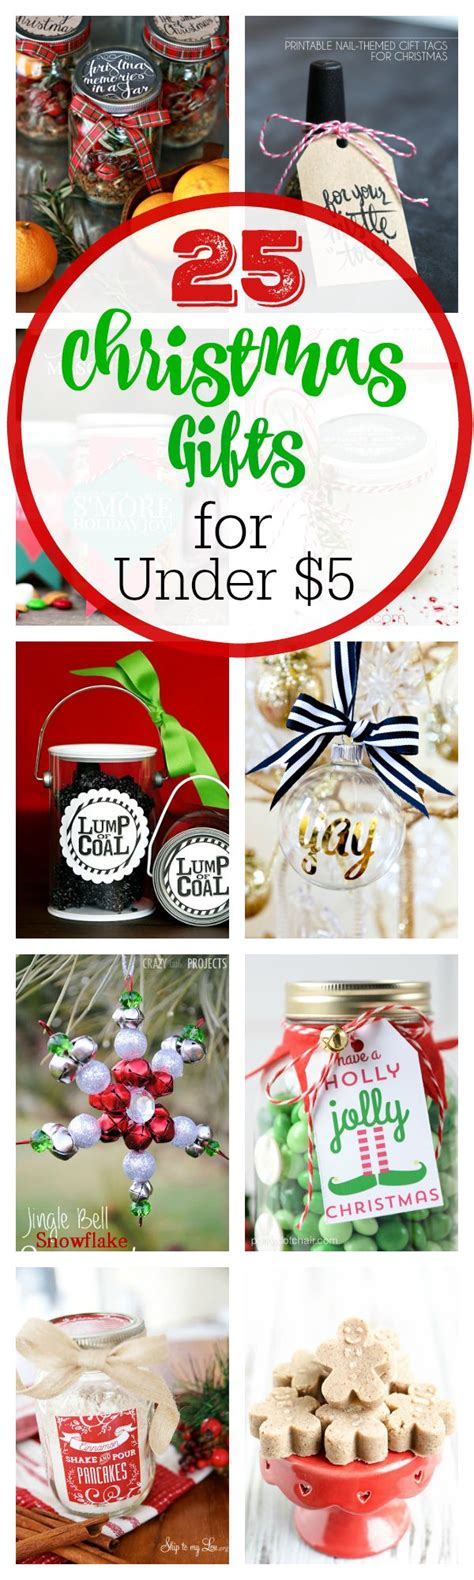 images of christmas gifts under 10 00 best christmas